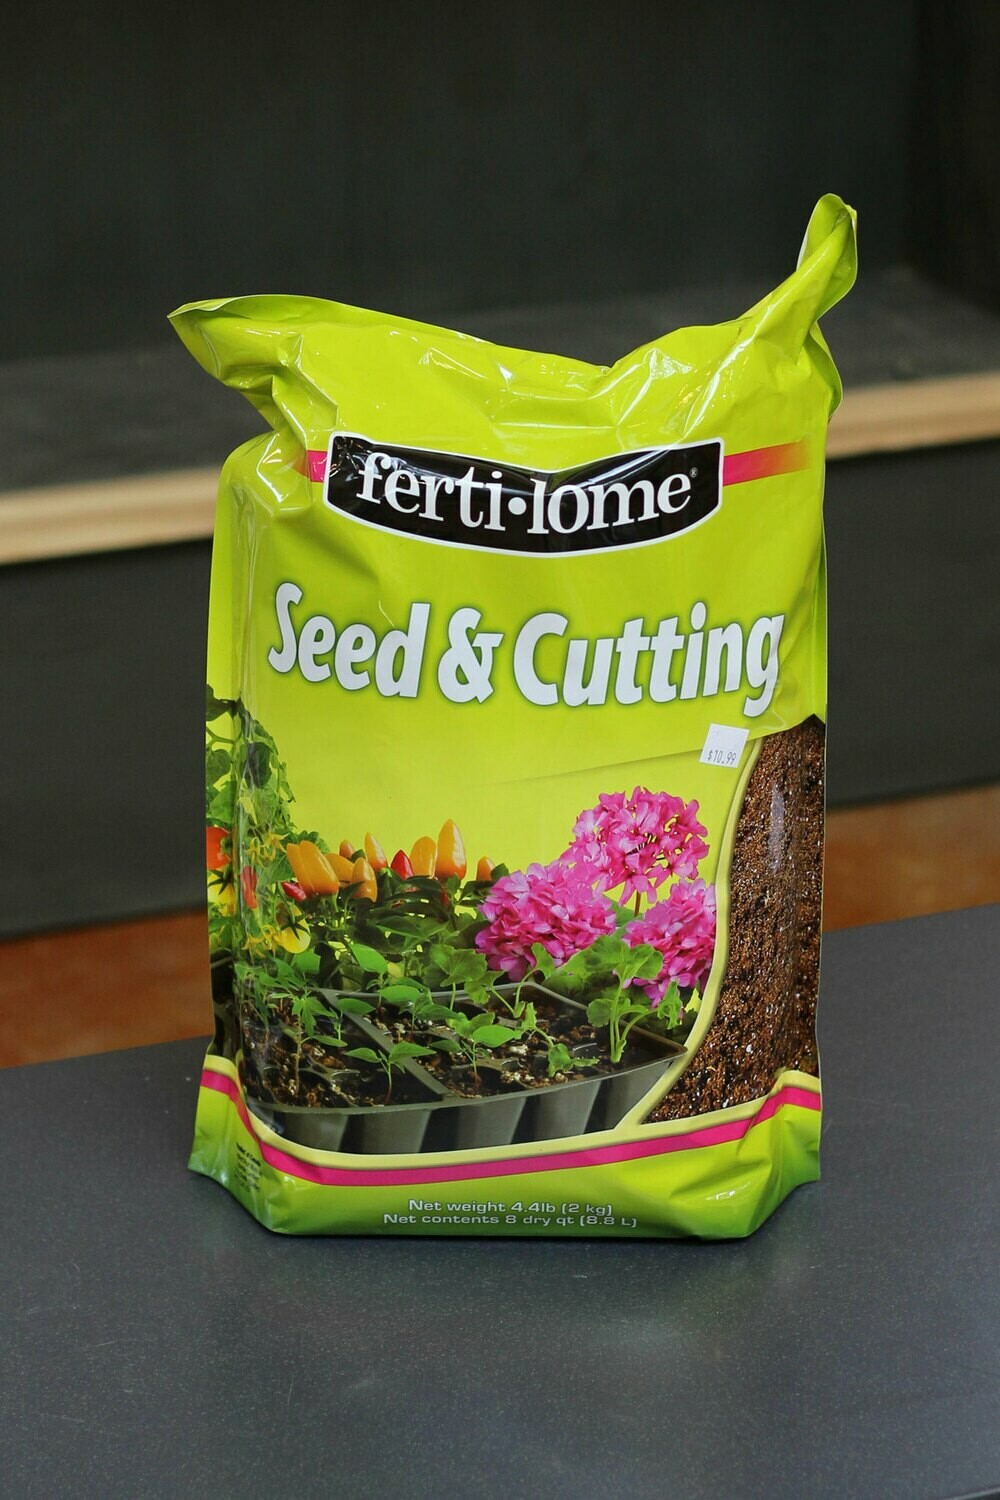 4.4lb Ferti-lome Seed & Cutting Mix